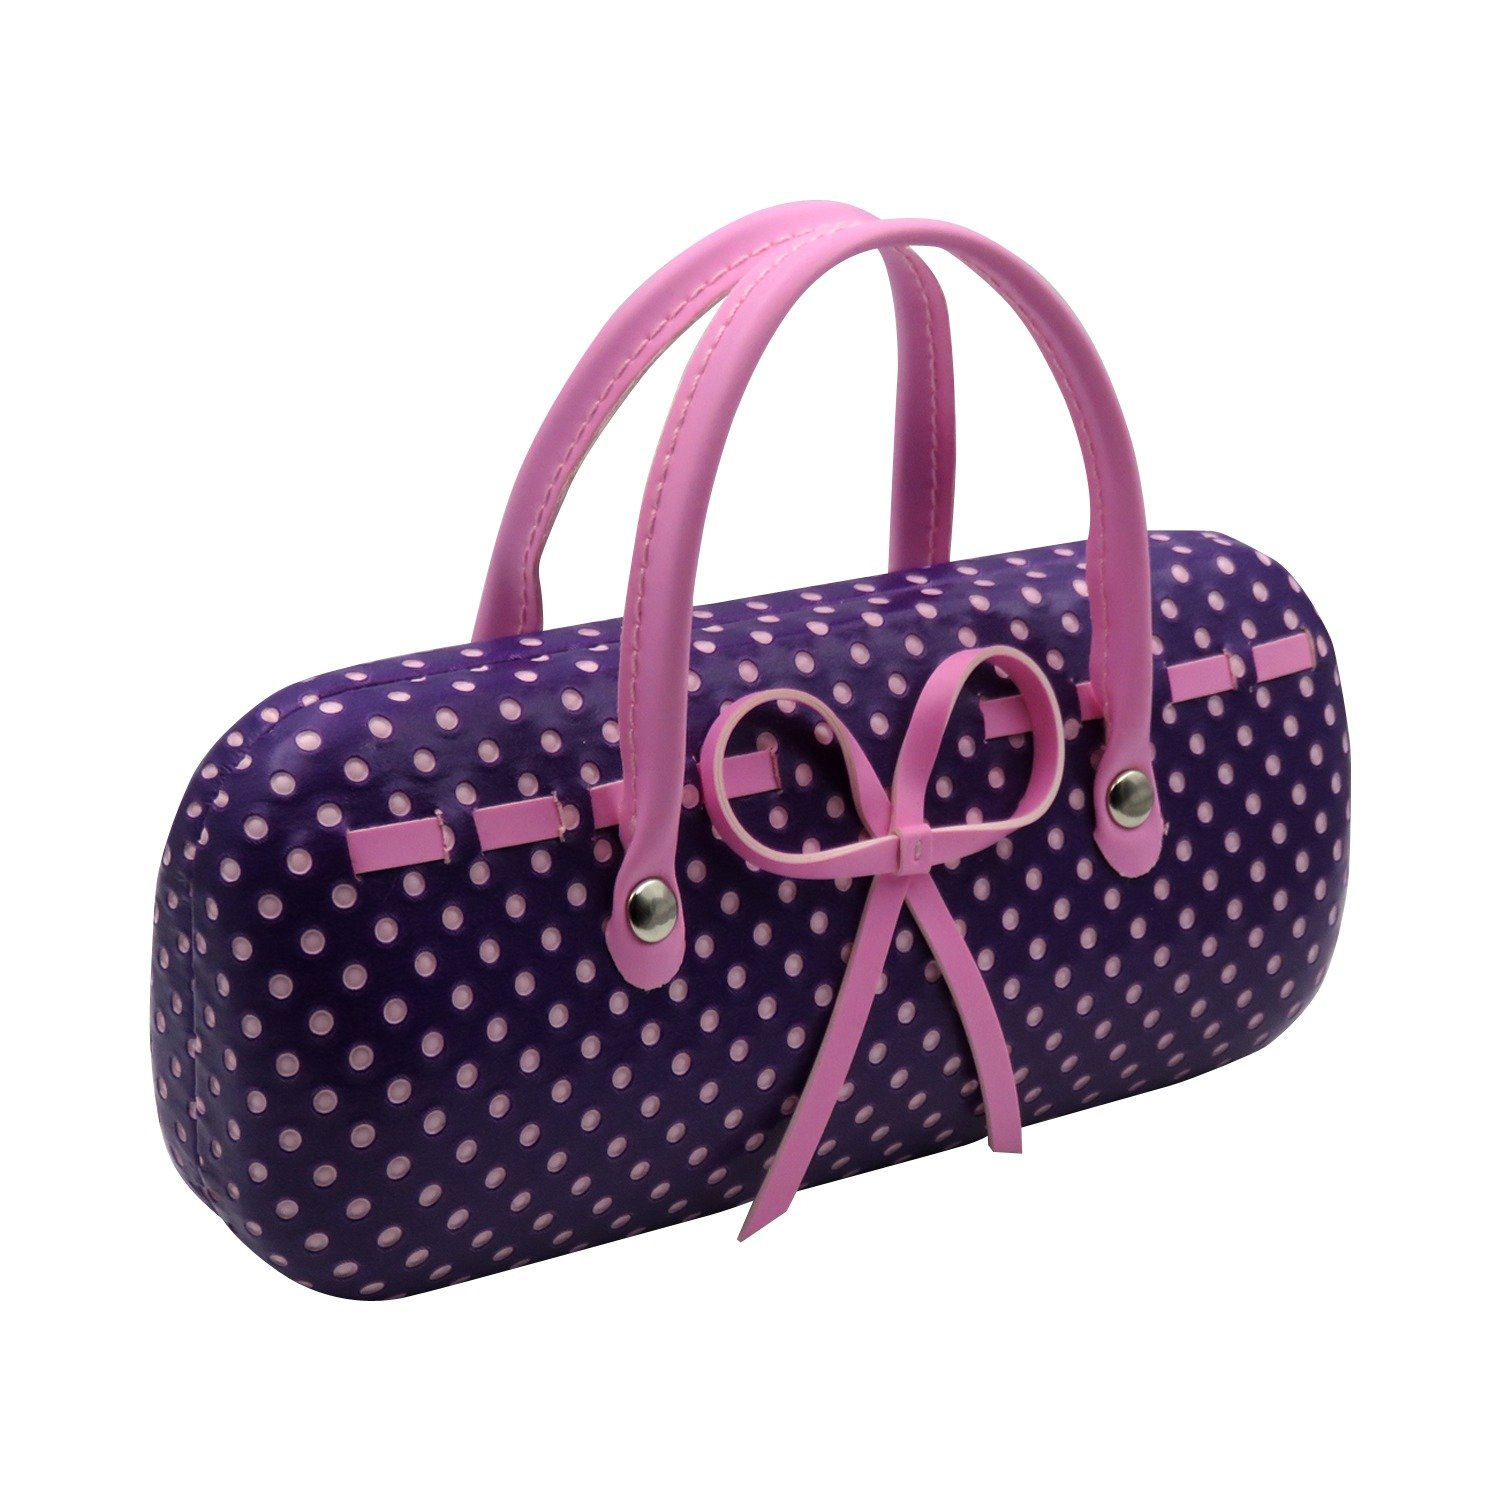 Purple Hard Protective Eyeglass Case with handles Mini handbag Eyeglass Case with cleaning cloth for Medium frames Women & Girls Small accessories| AS12TG Polka Dots Purple